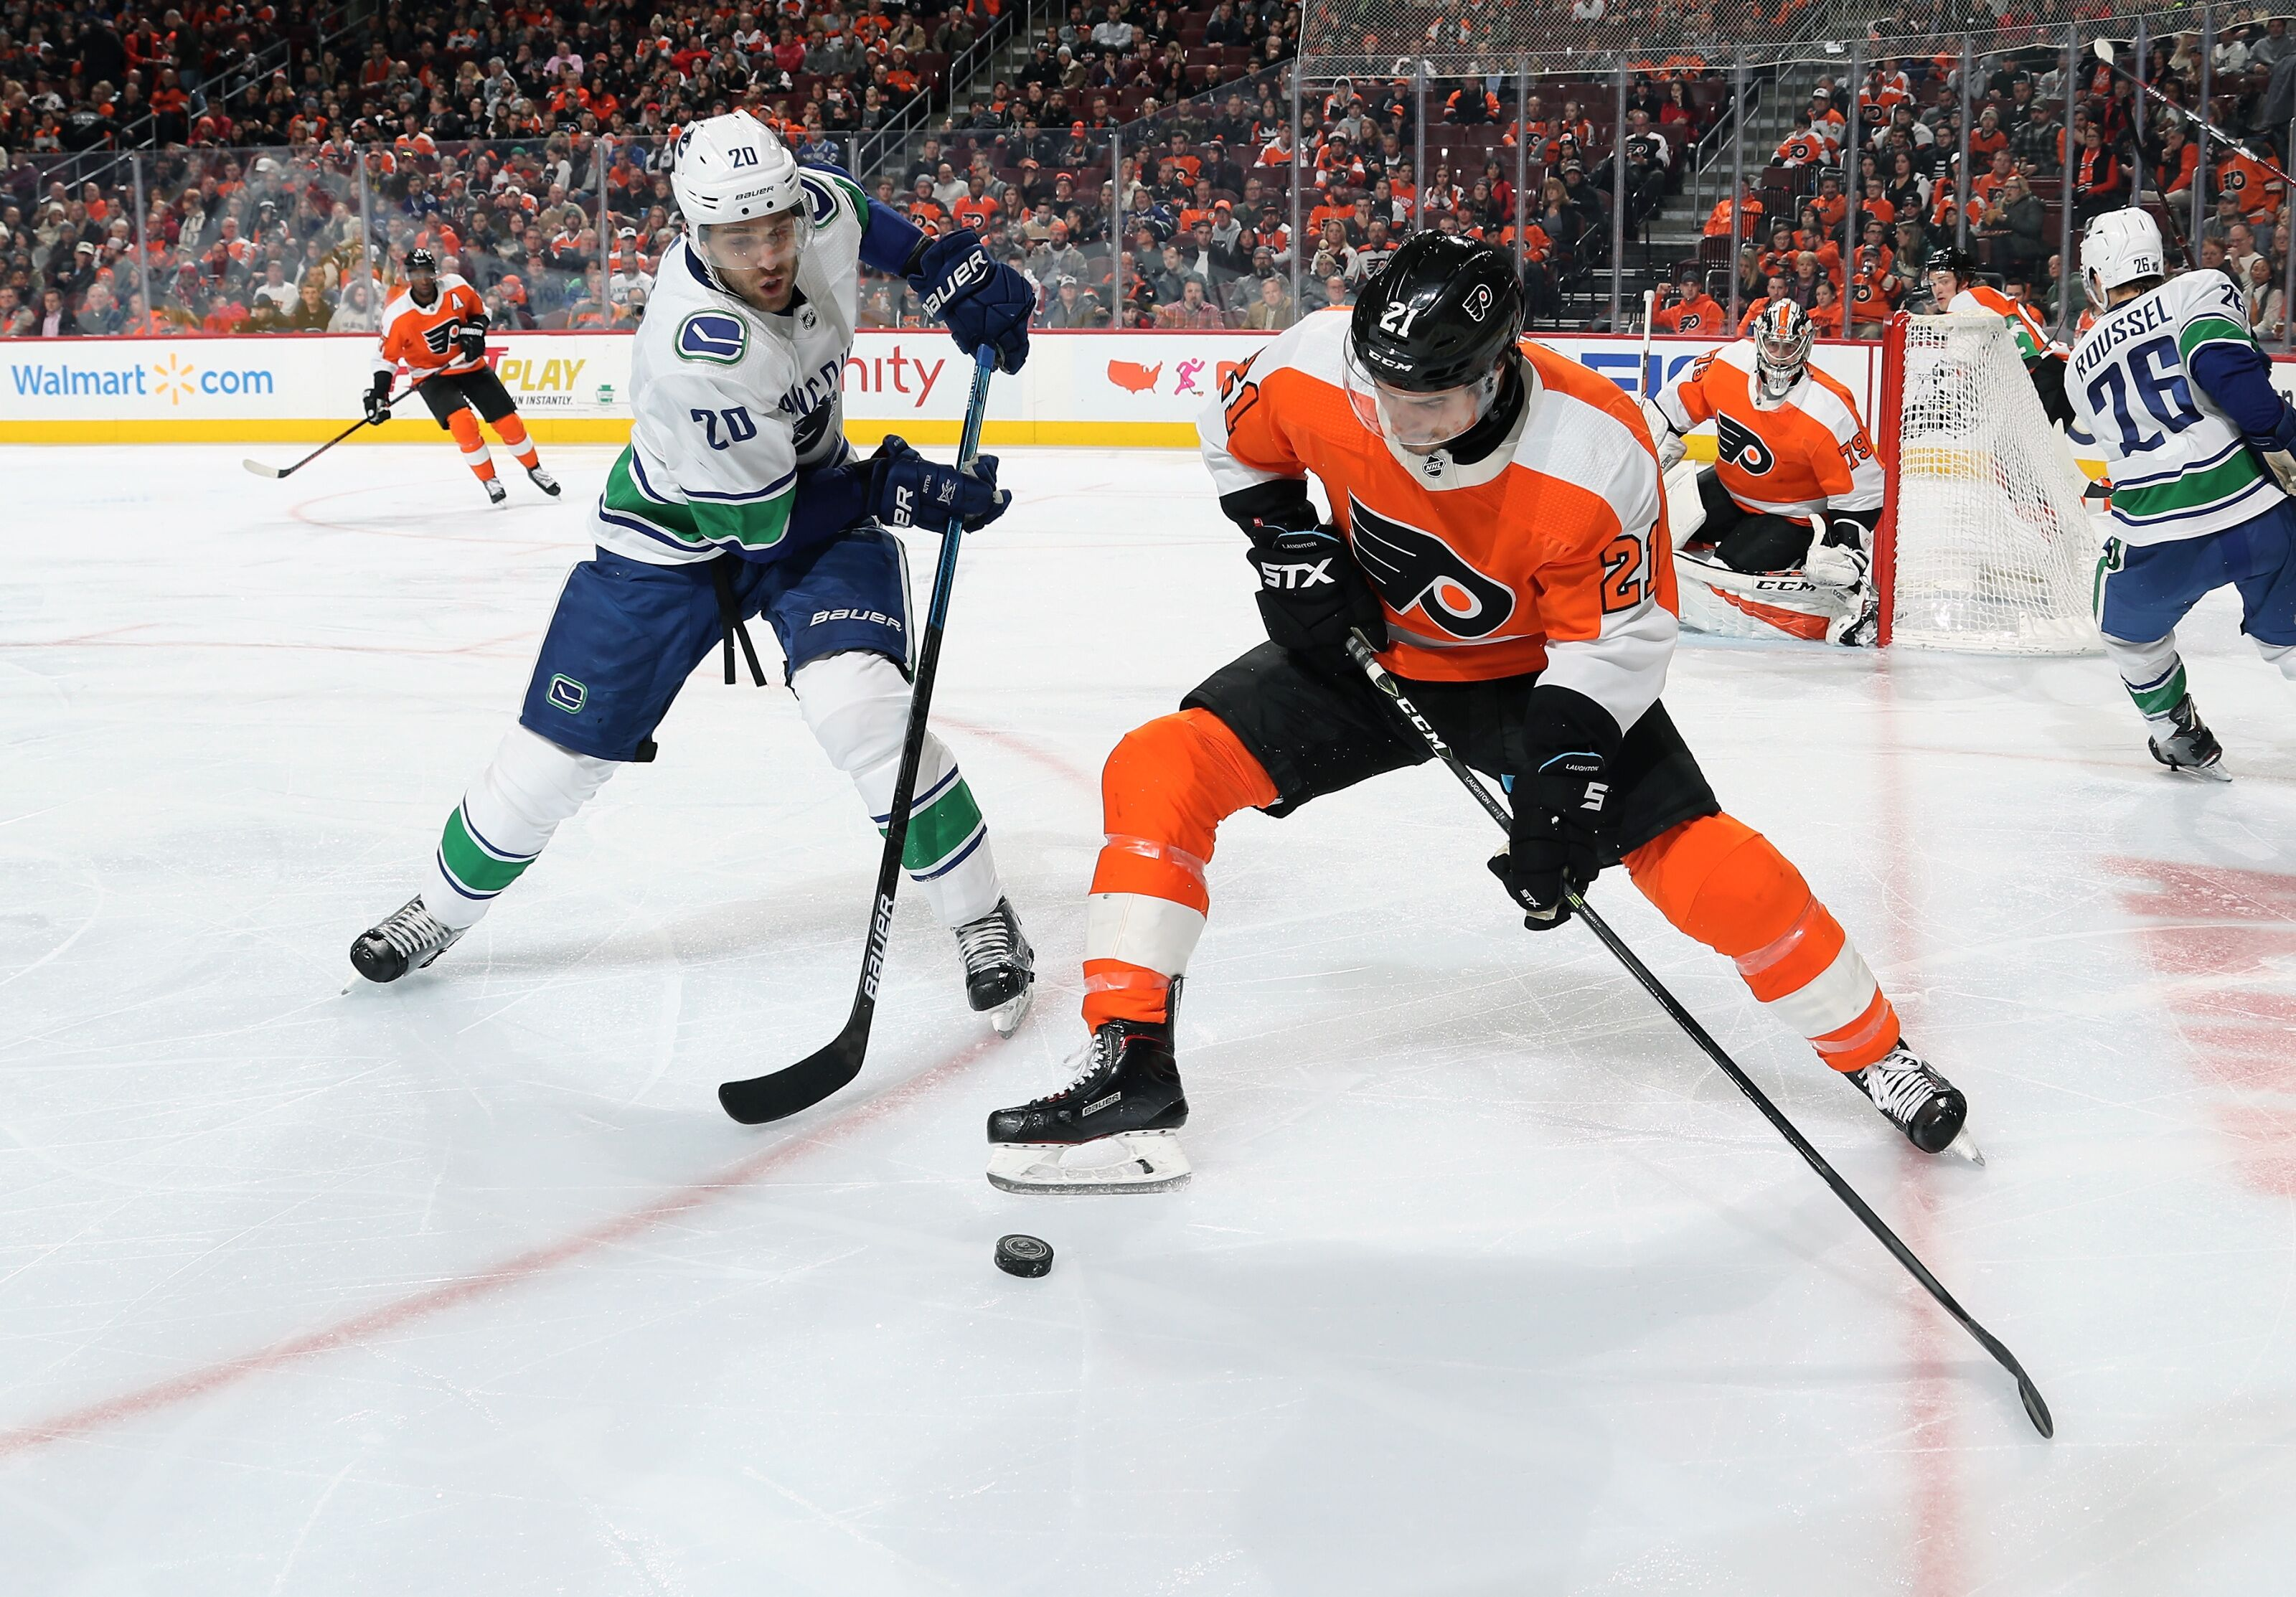 Vancouver Canucks gameday: Philadelphia Flyers come to town